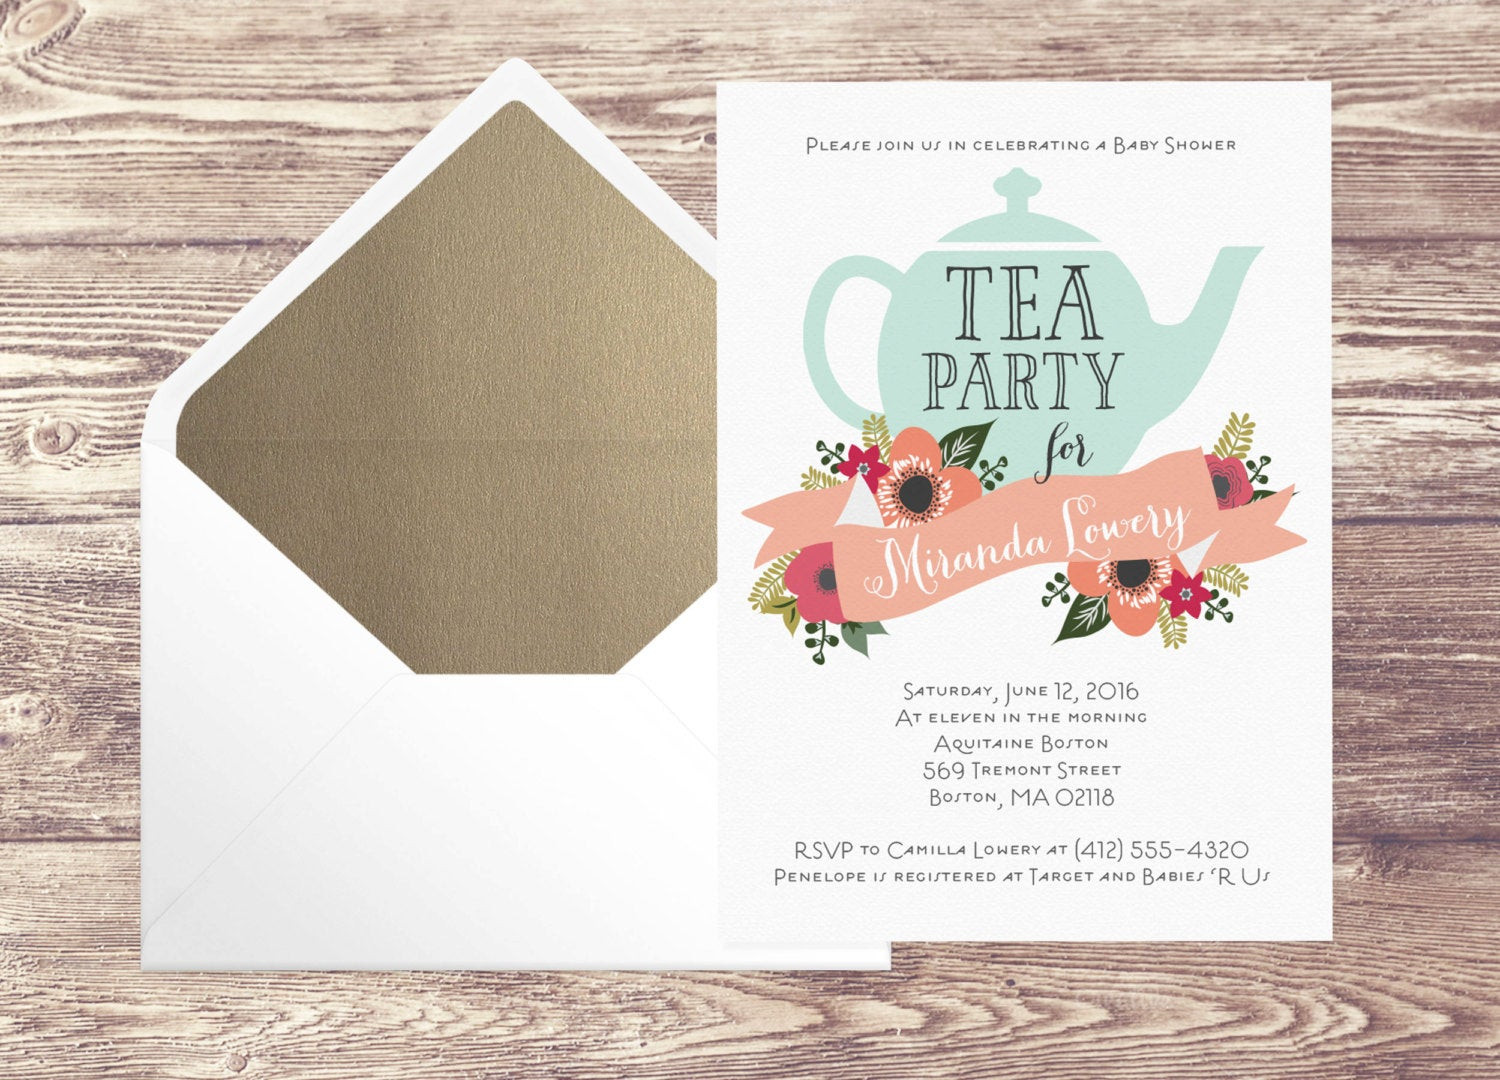 Baby Shower Invitations Tea Party  Printed Baby Shower Tea Party Invitation with Gold Envelope